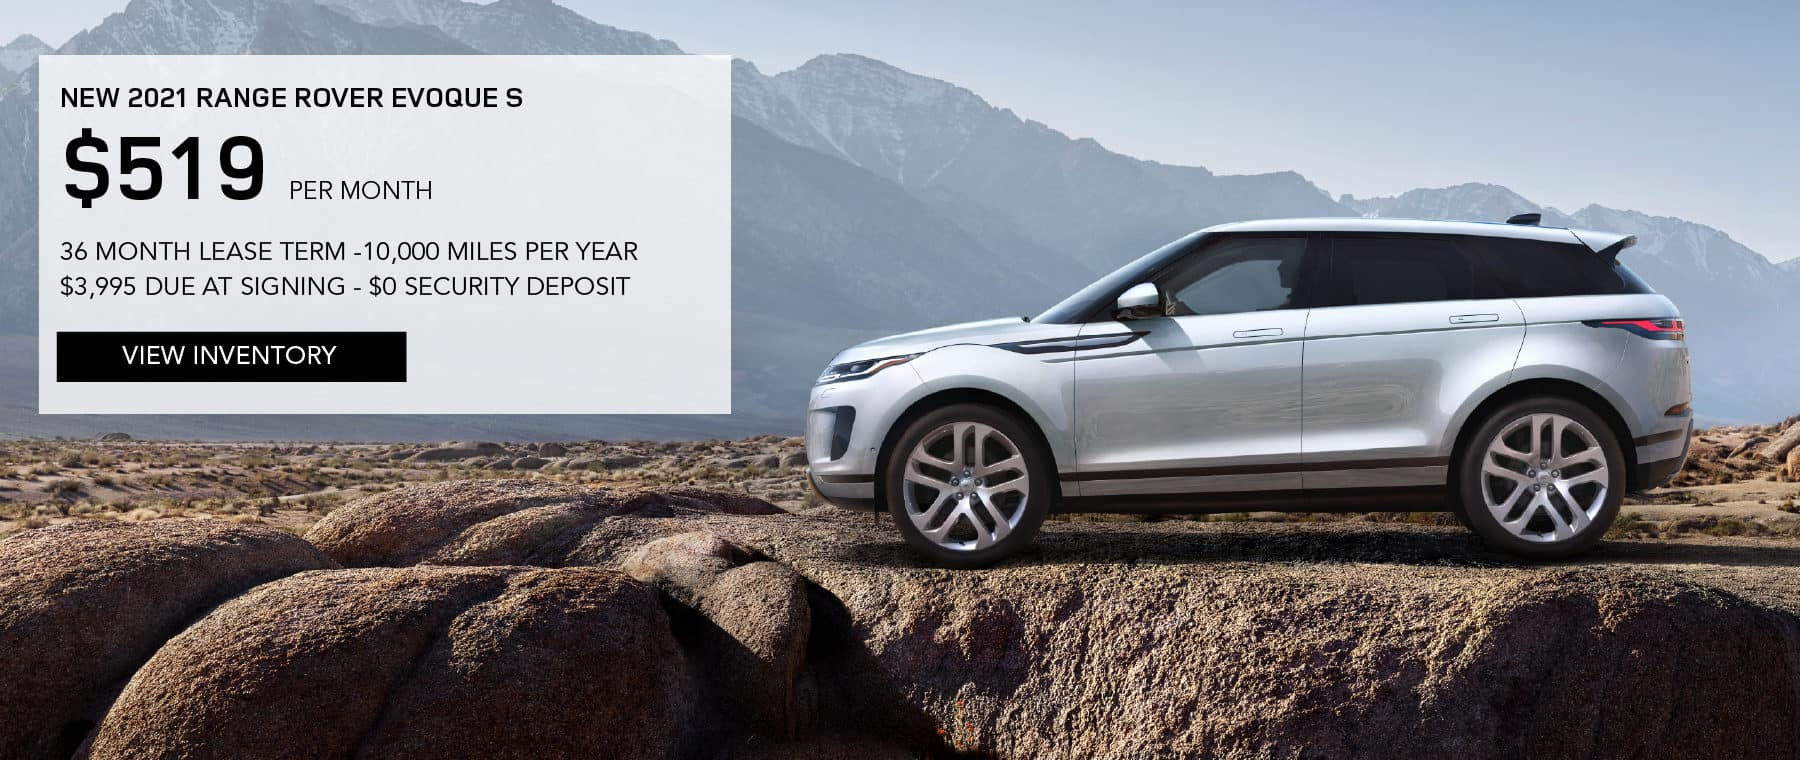 NEW 2021 RANGE ROVER EVOQUE S. $519 PER MONTH. 36 MONTH LEASE TERM. $3,995 CASH DUE AT SIGNING. $0 SECURITY DEPOSIT. 10,000 MILES PER YEAR. EXCLUDES RETAILER FEES, TAXES, TITLE AND REGISTRATION FEES, PROCESSING FEE AND ANY EMISSION TESTING CHARGE. OFFER ENDS 8/2/2021. VIEW INVENTORY. SILVER RANGE ROVER EVOQUE PARKED IN MOUNTAINS.